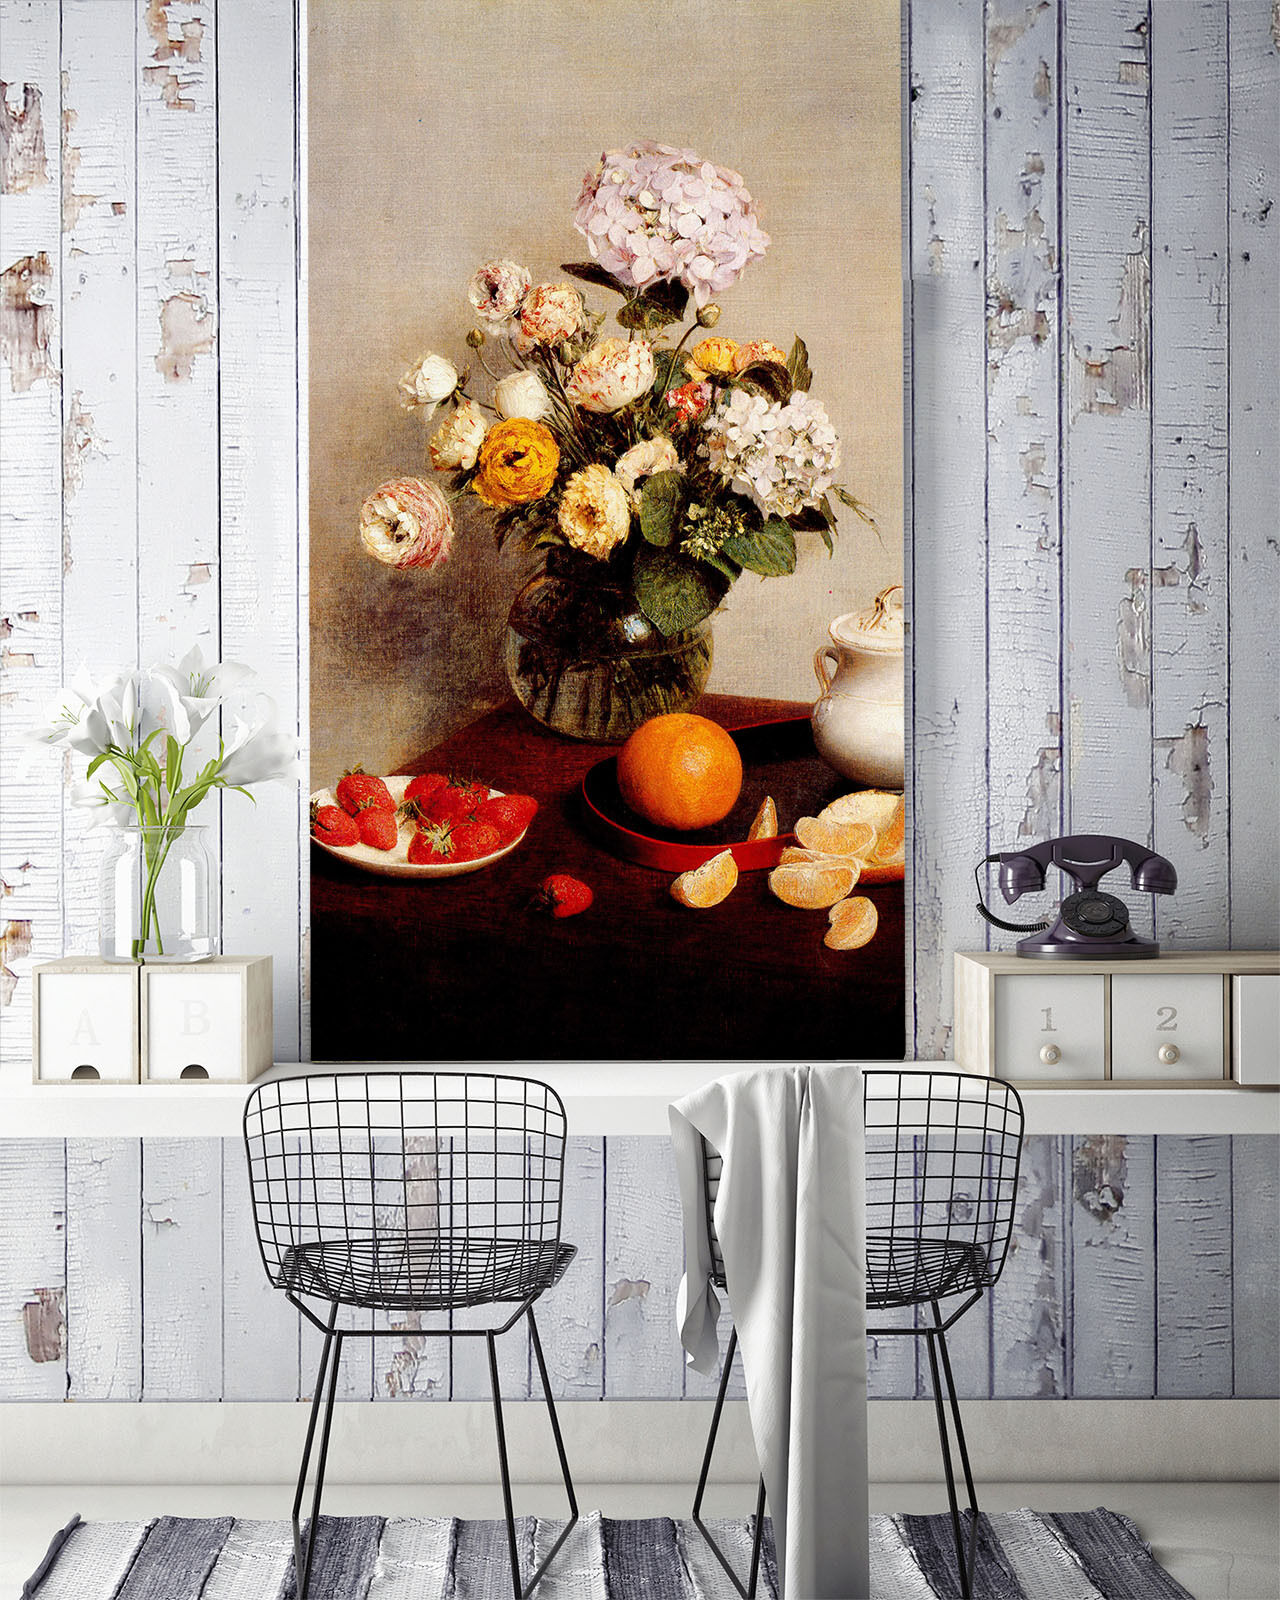 3D Farbe Bouquet Vase Fruit 02 Wall Paper Wall Print Decal Wall AJ WALLPAPER CA